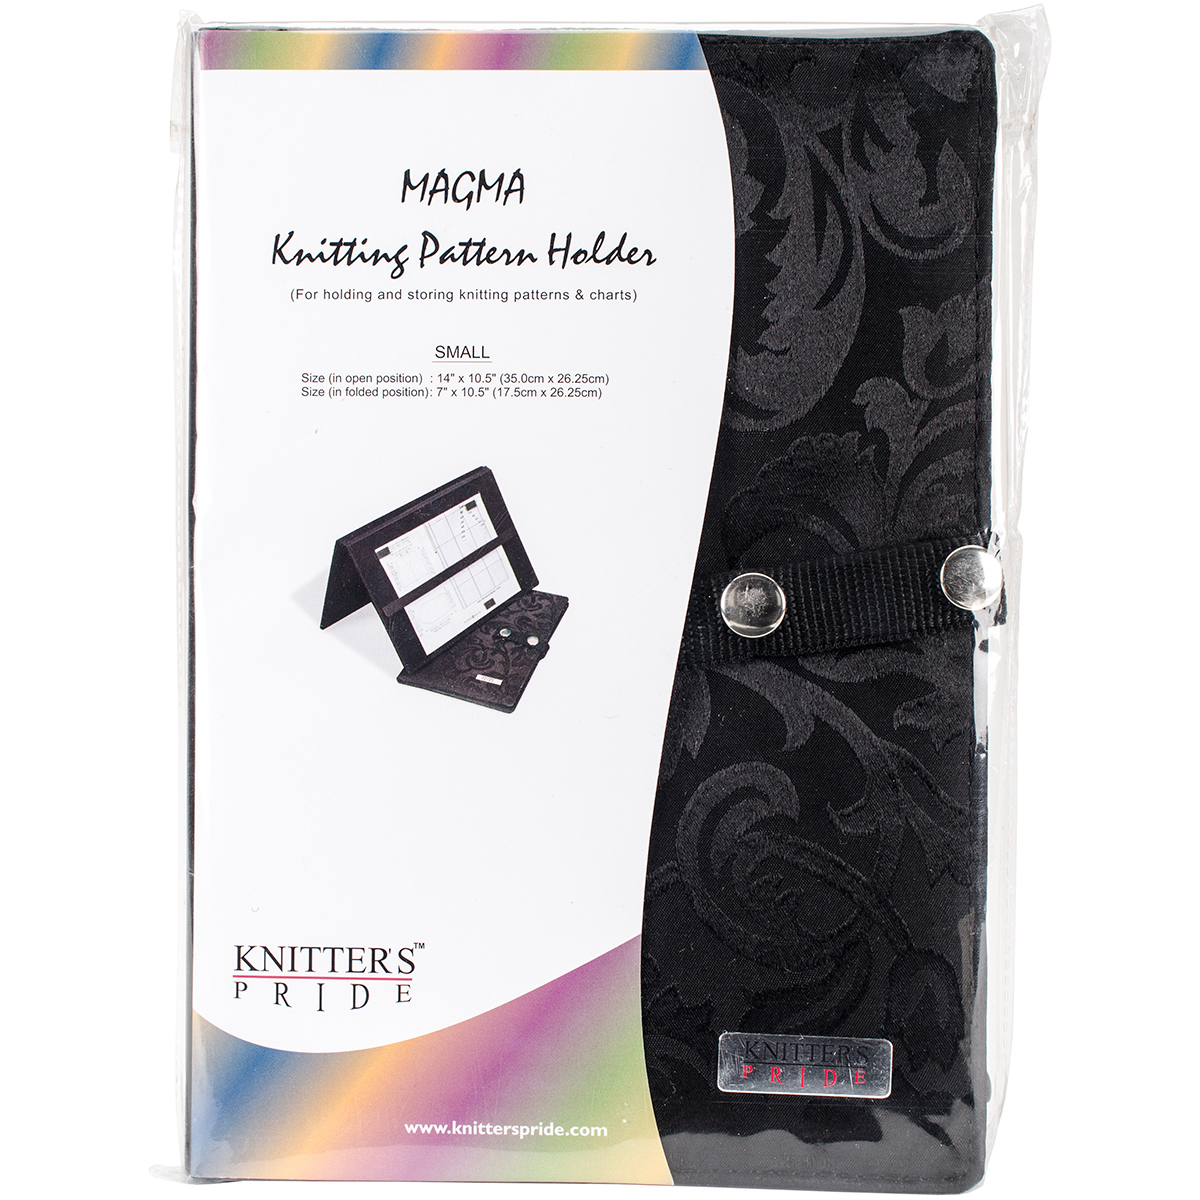 Knitter's Pride Pattern Holder Small - Magma